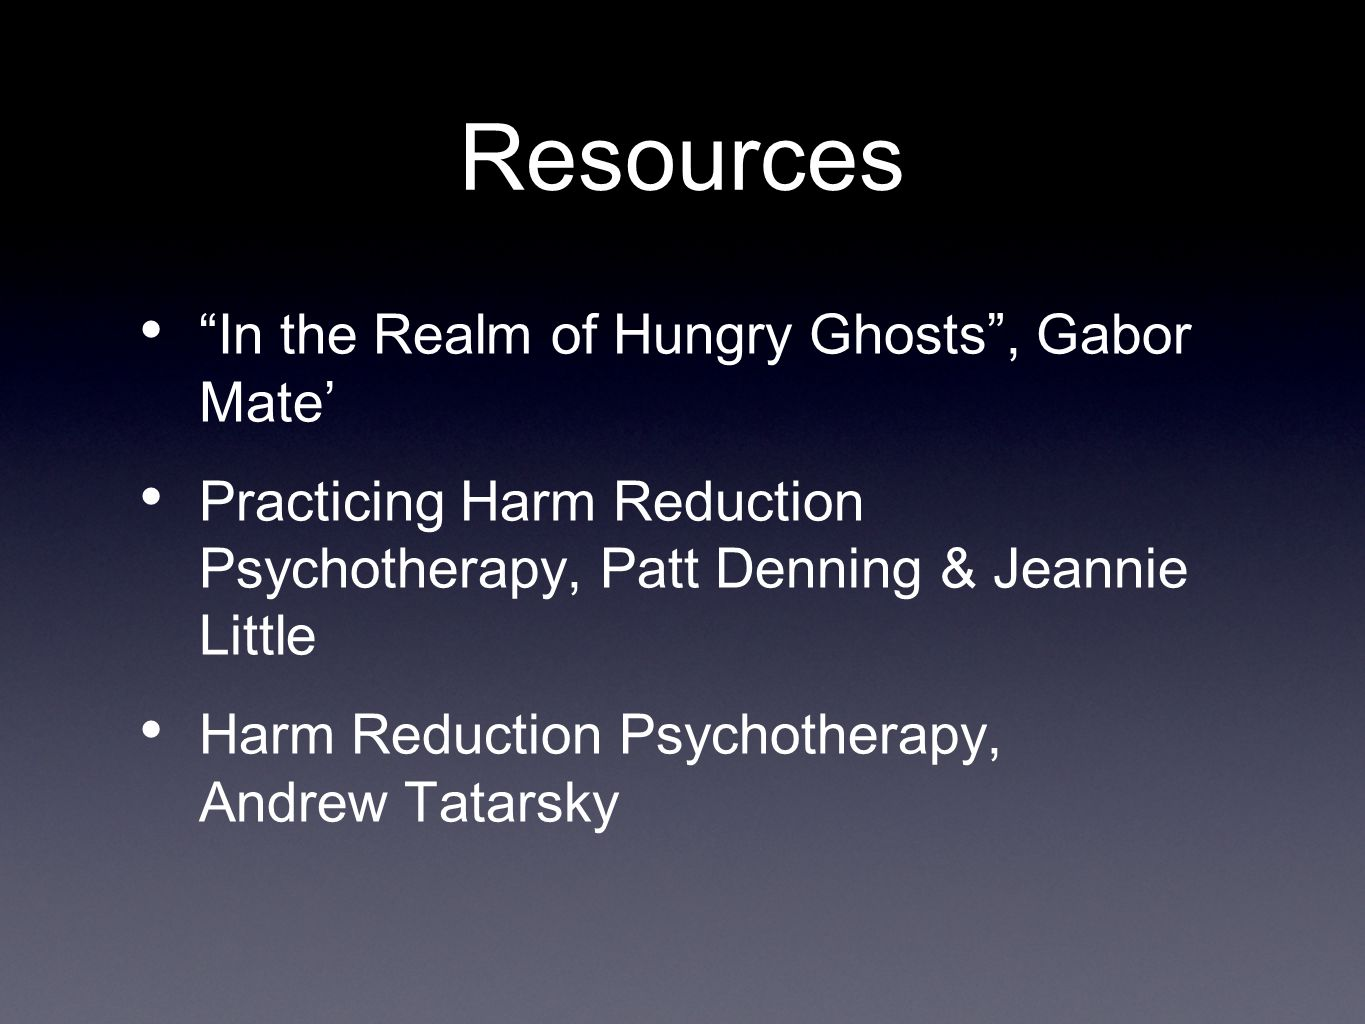 Resources In the Realm of Hungry Ghosts , Gabor Mate' Practicing Harm Reduction Psychotherapy, Patt Denning & Jeannie Little Harm Reduction Psychotherapy, Andrew Tatarsky